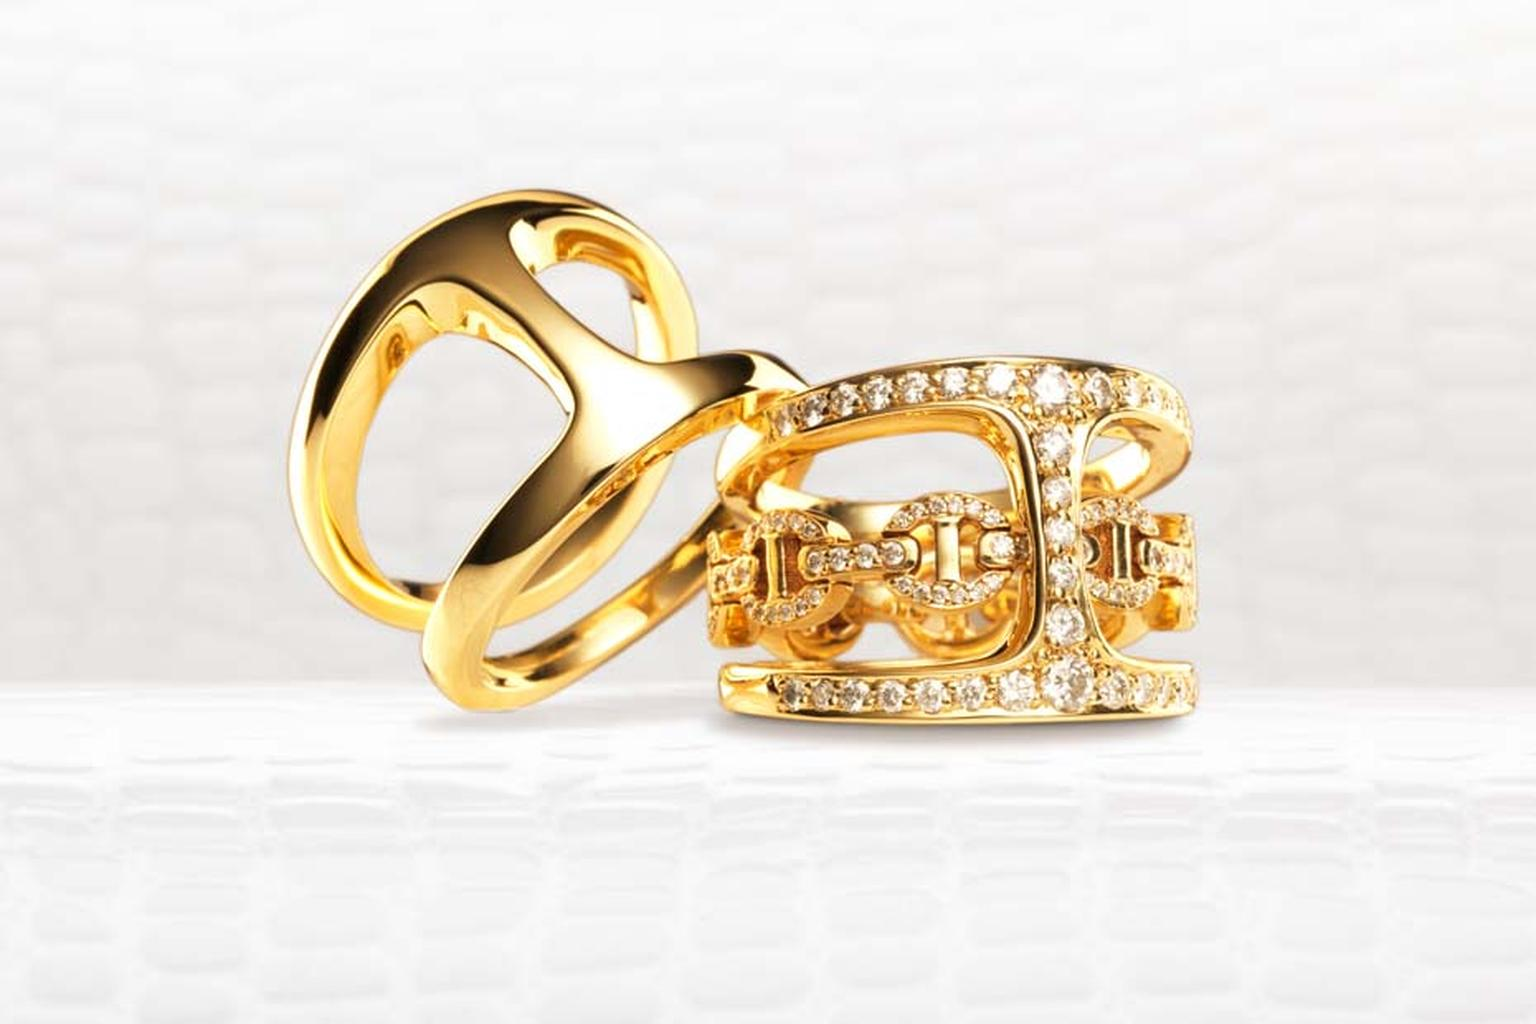 Hoorsenbuhs Dame Phantom Clique ring in yellow gold alongside the Gold Phantom Clique ring with diamonds.